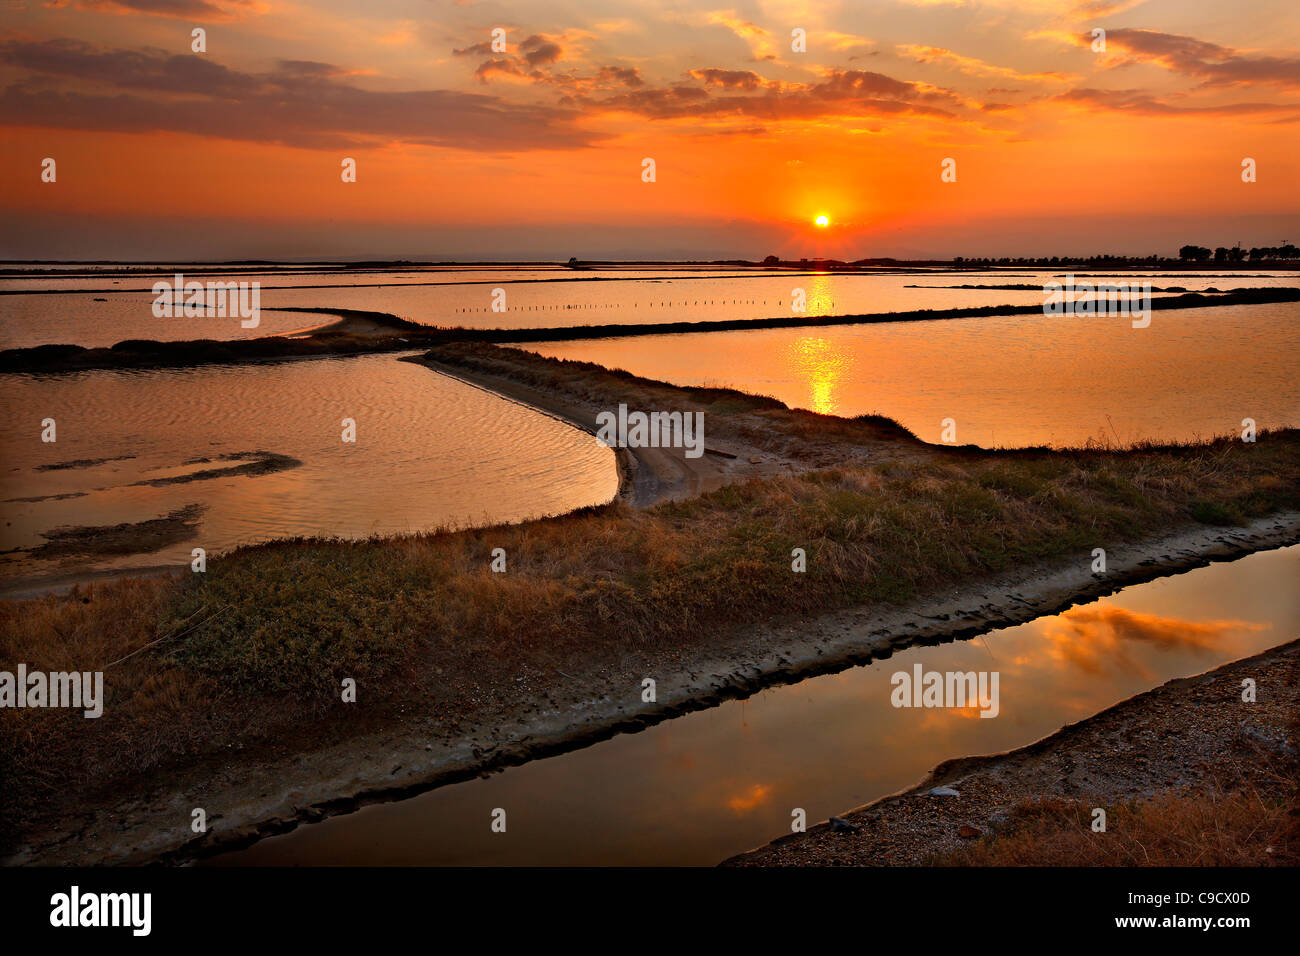 Sunset photo at the lagoon of Angelochori, a wetland about 30 km from Thessaloniki, Macedonia, Greece - Stock Image